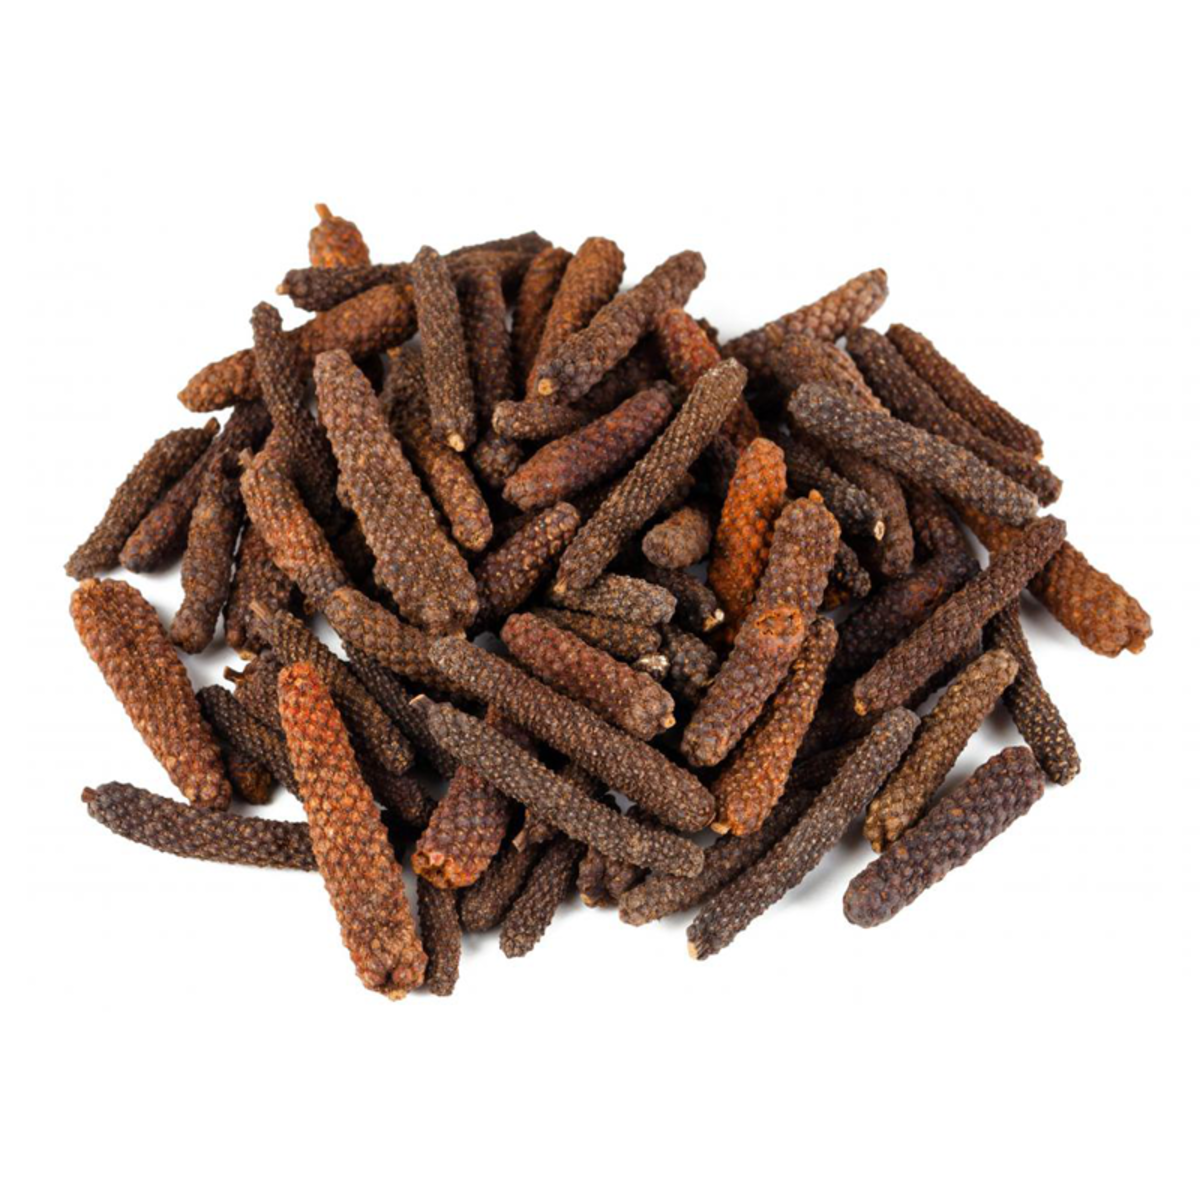 5-most-expensive-spices-in-the-world